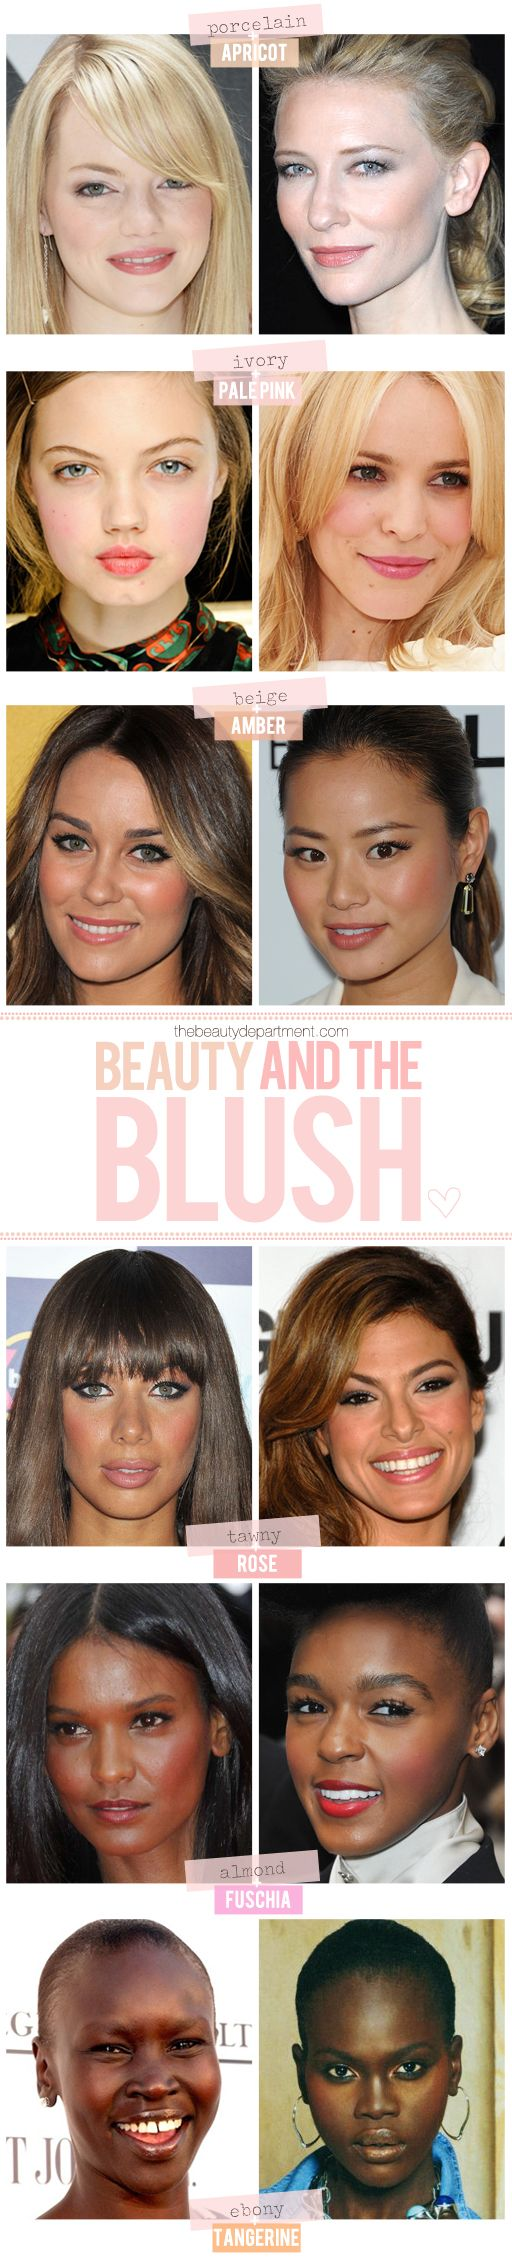 A go-to guide for flattering blush tones.: Beautiful Department, Blushes Shades, Fair Skin, Skin Tones, Blushes Tones, Pale Pink, Eye Make Up, Flatter Blushes, Skin Color